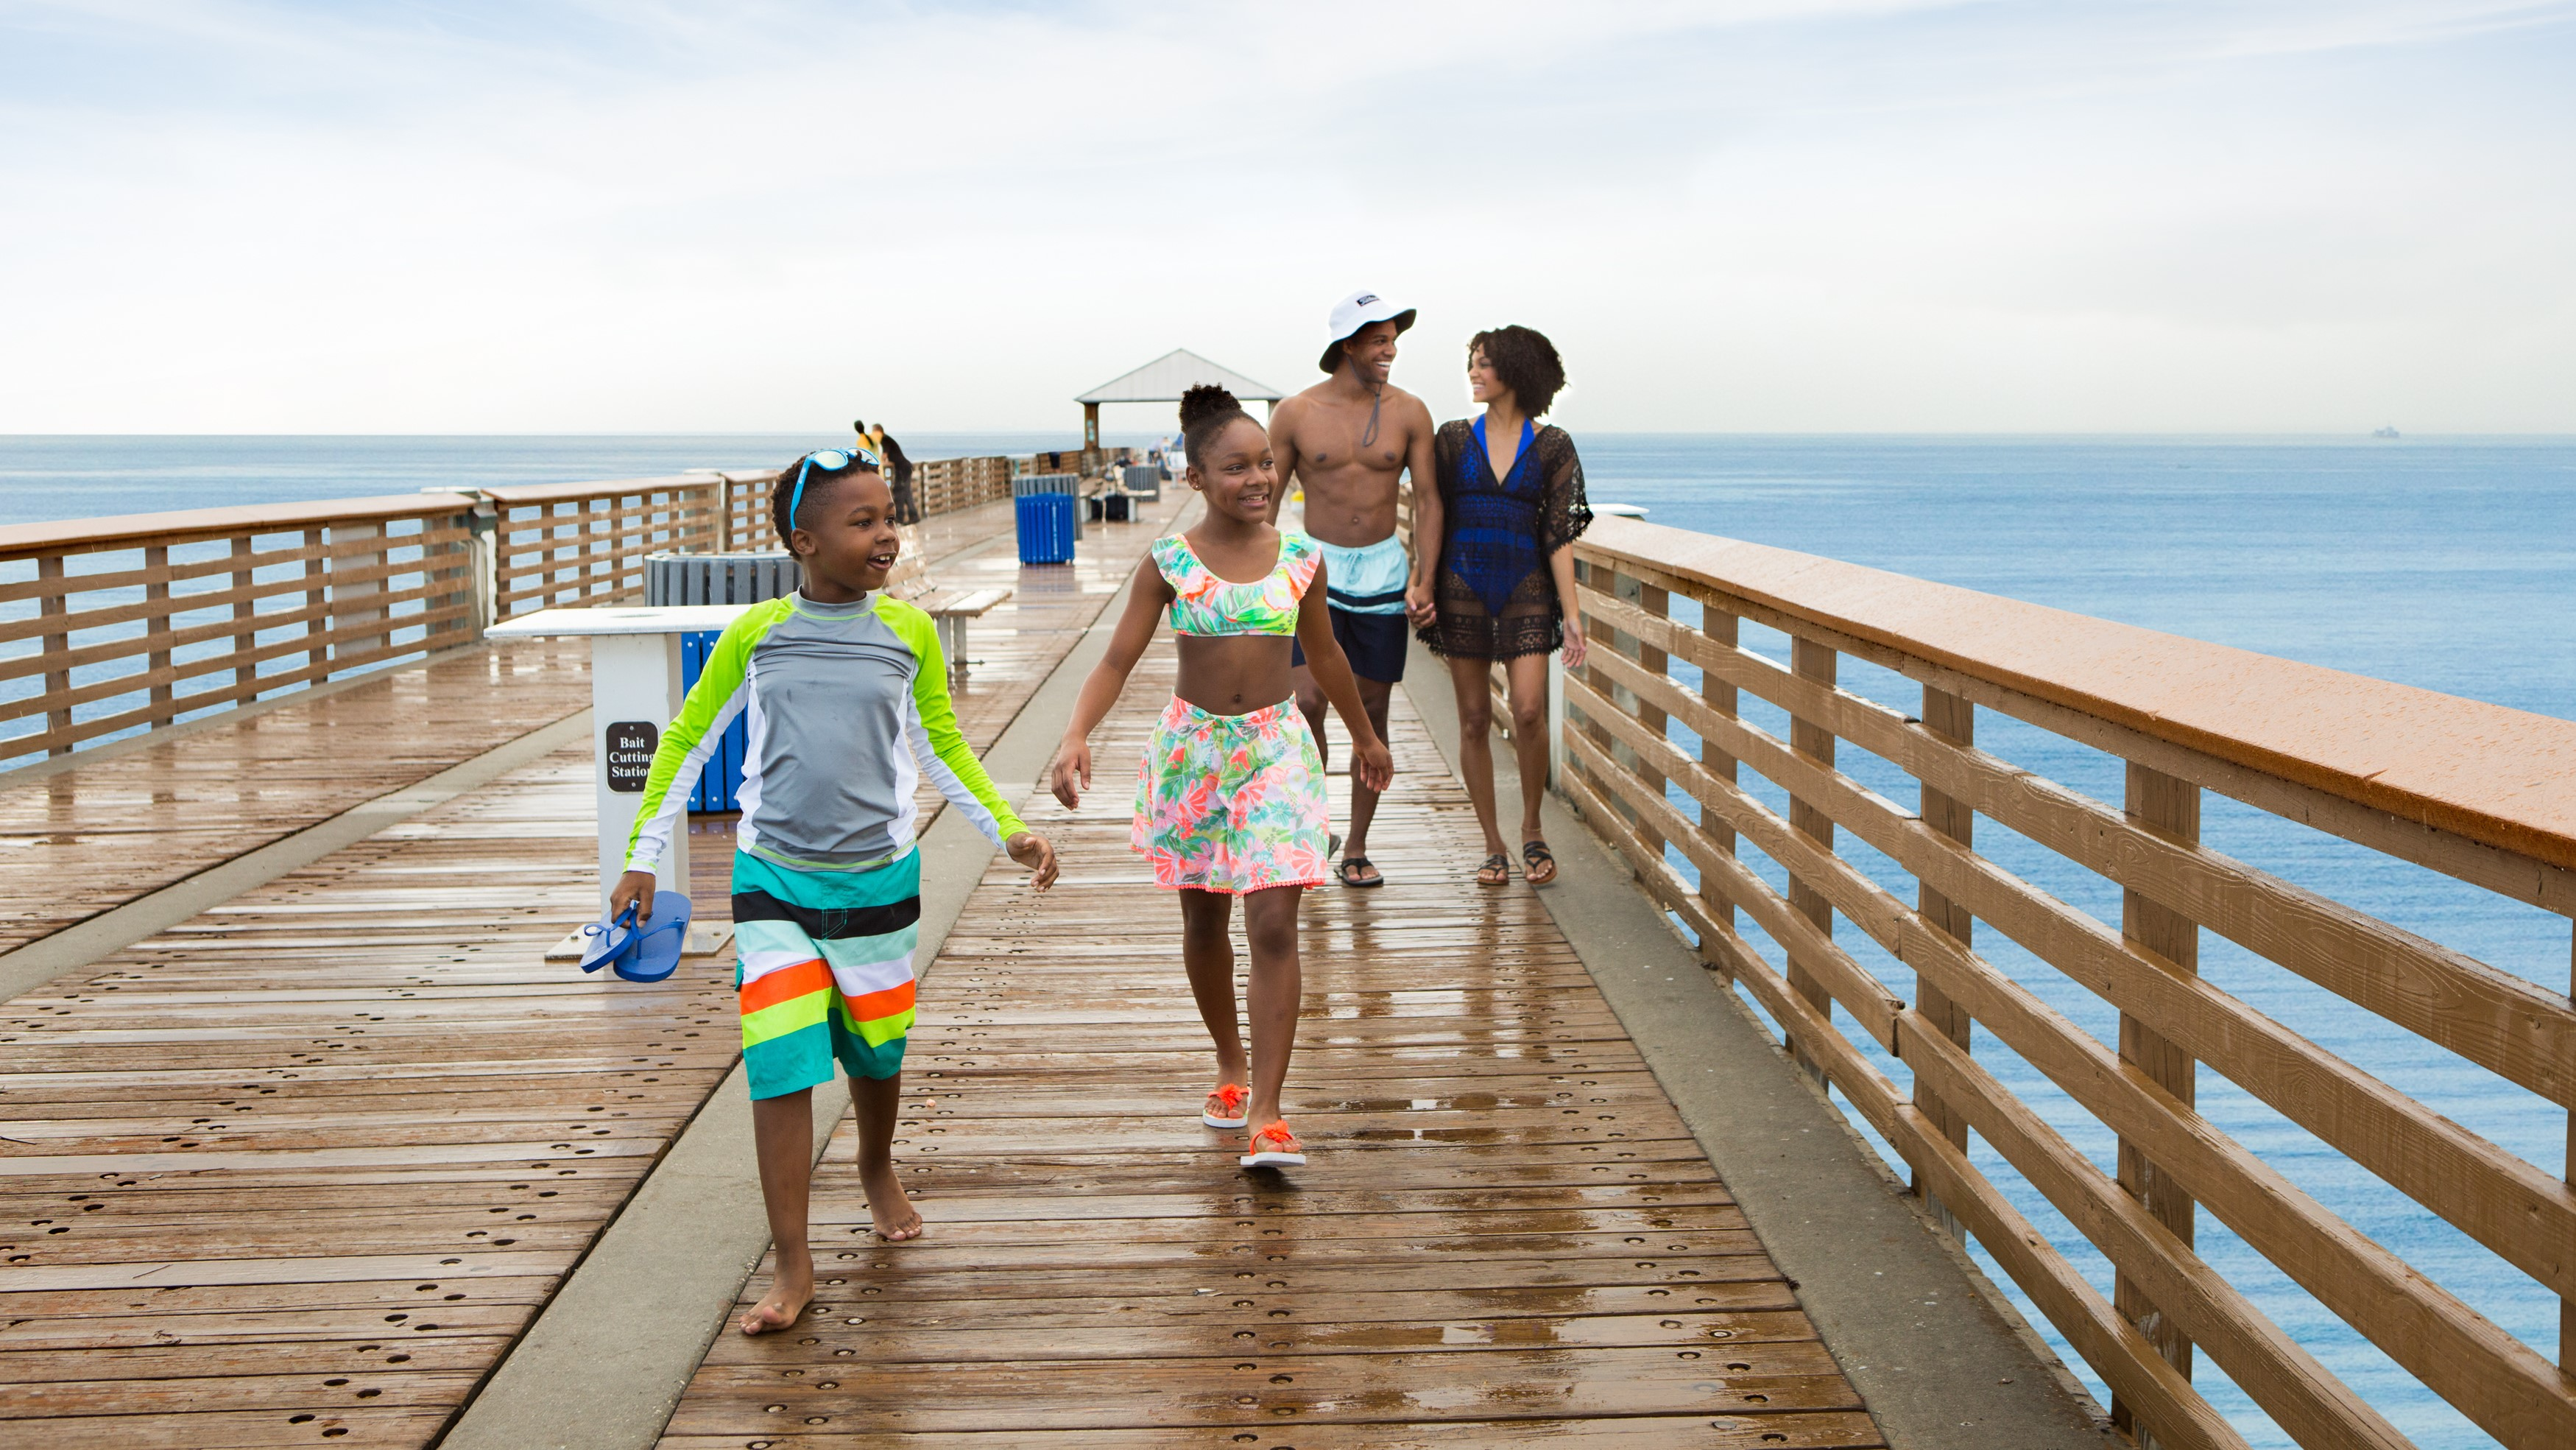 Fun Activities For Kids In Florida